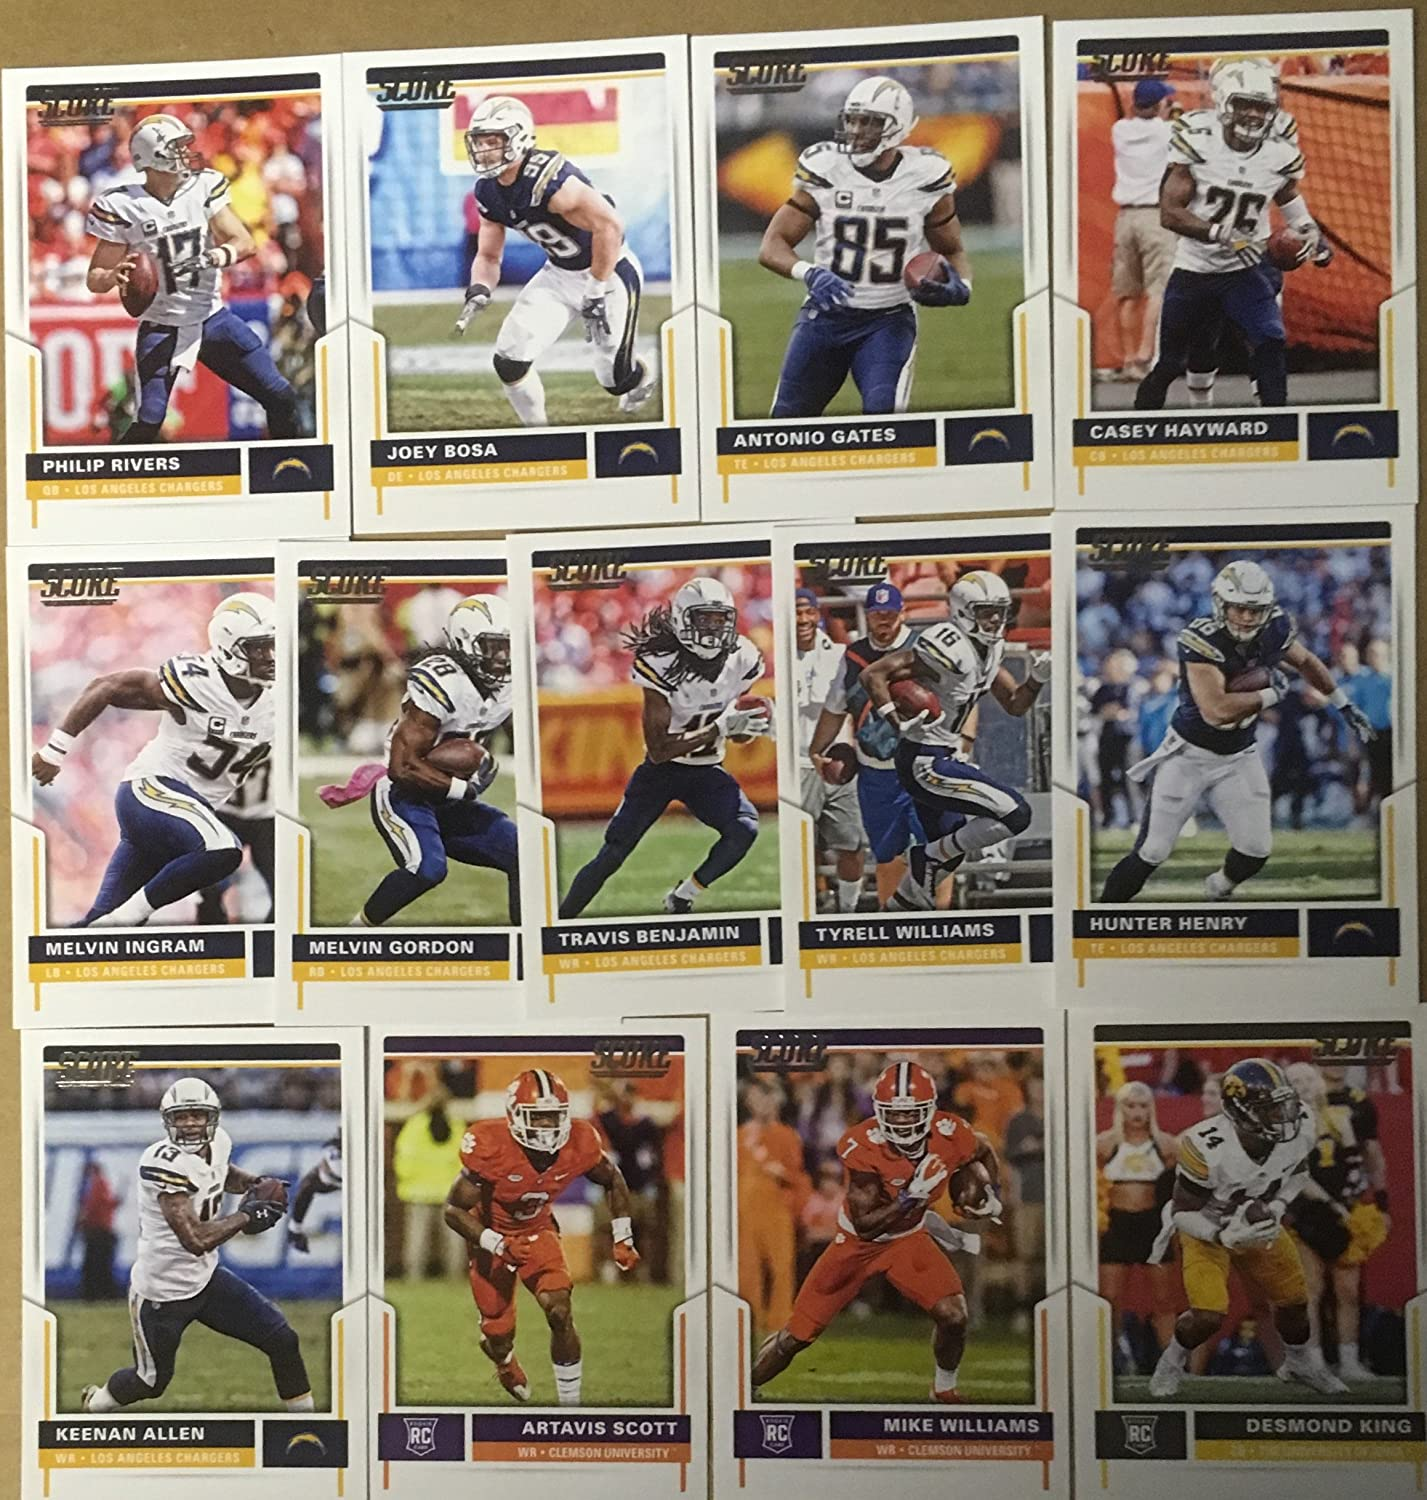 f9d3c229 2017 Panini Score Football Los Angeles Chargers Team Set 13 Cards W ...